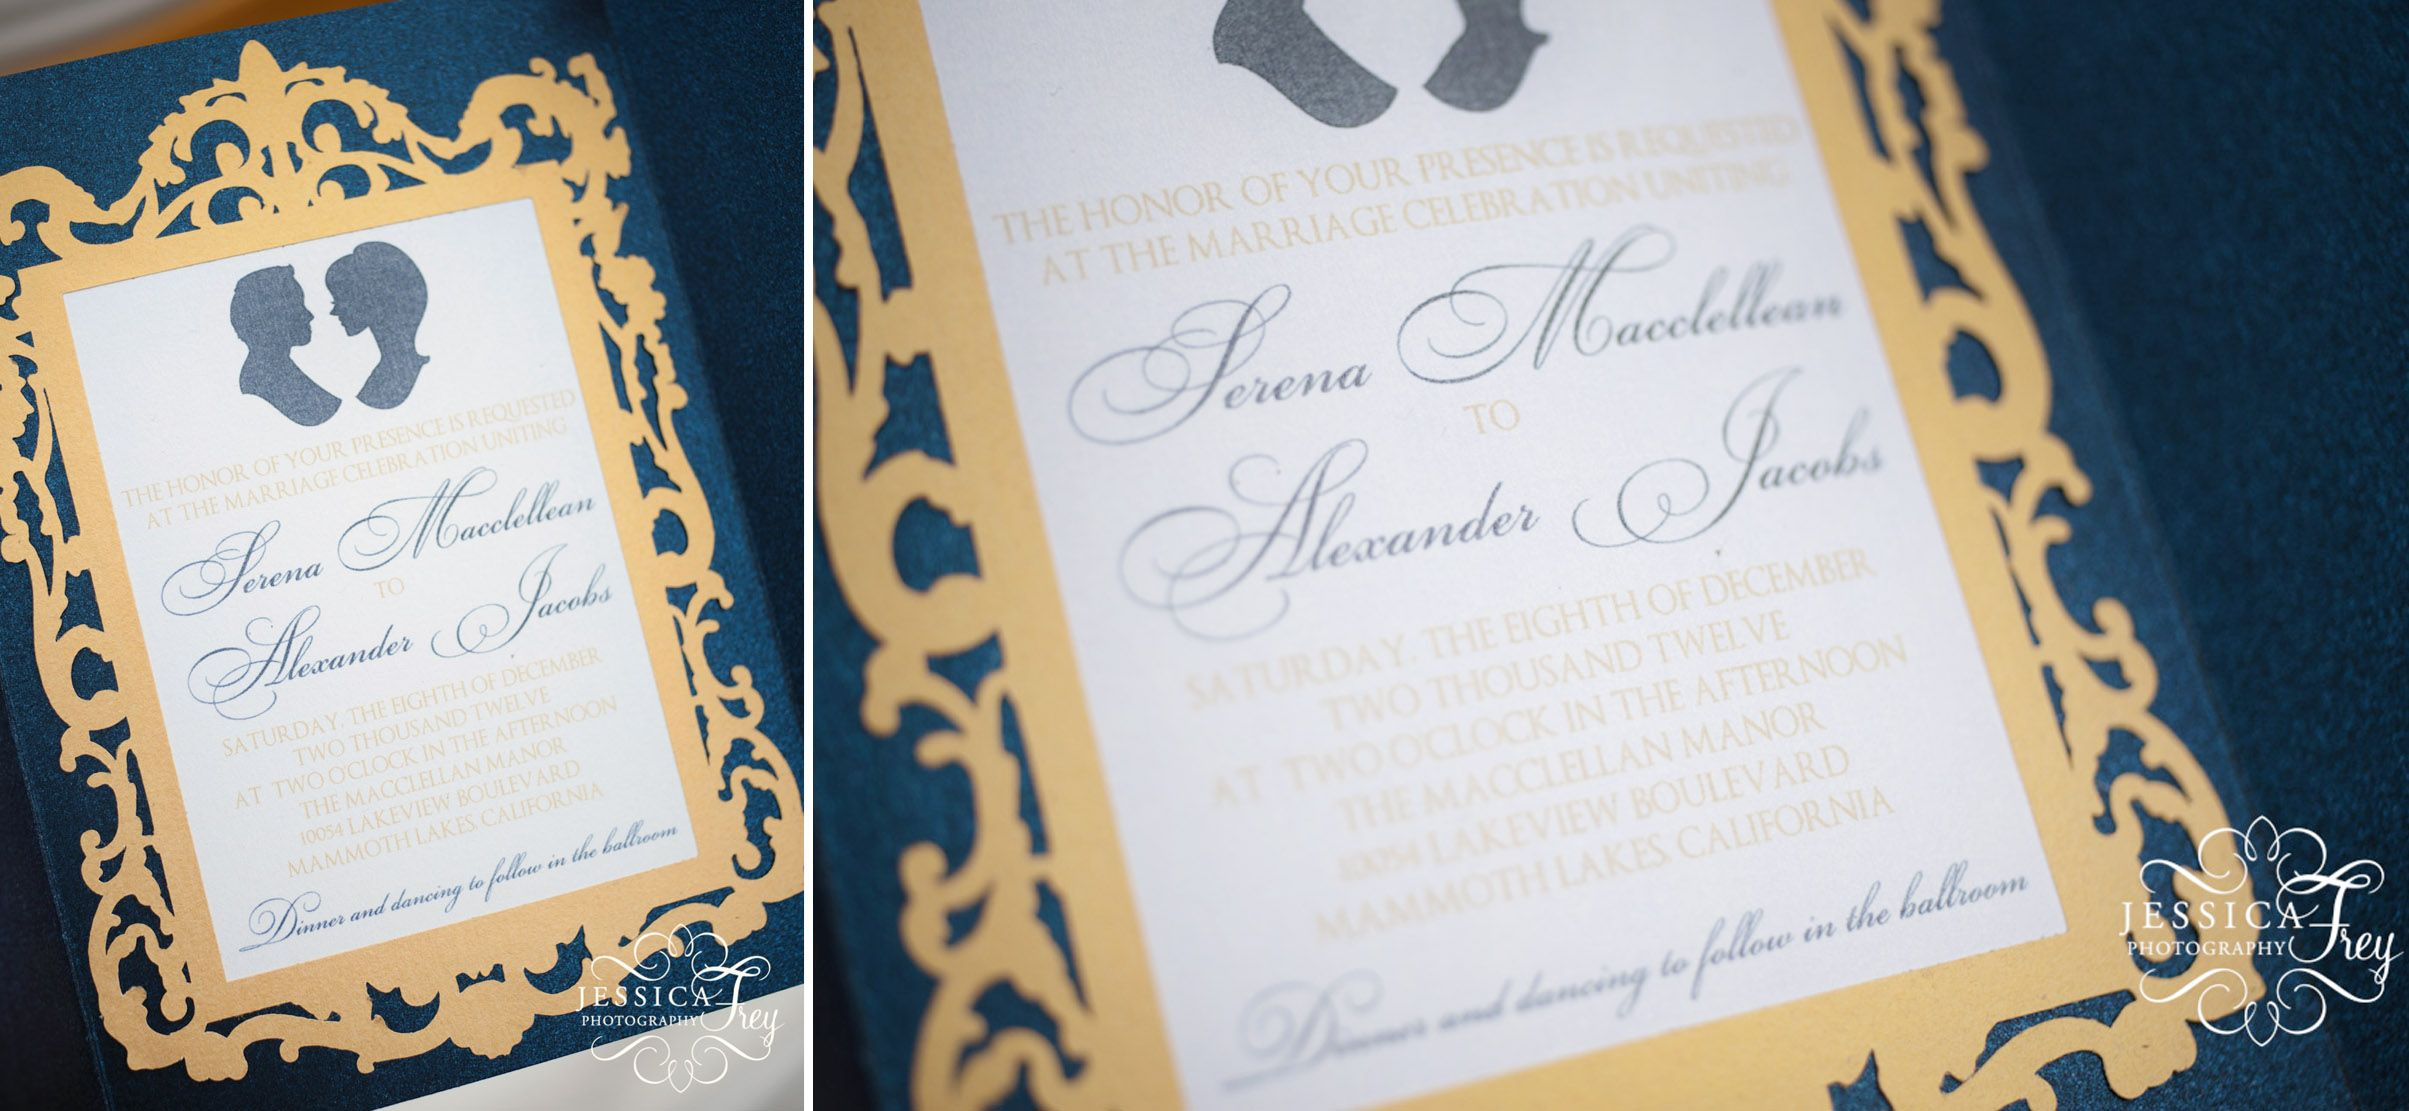 Beauty And The Beast Inspired Wedding Invitation For Jessica